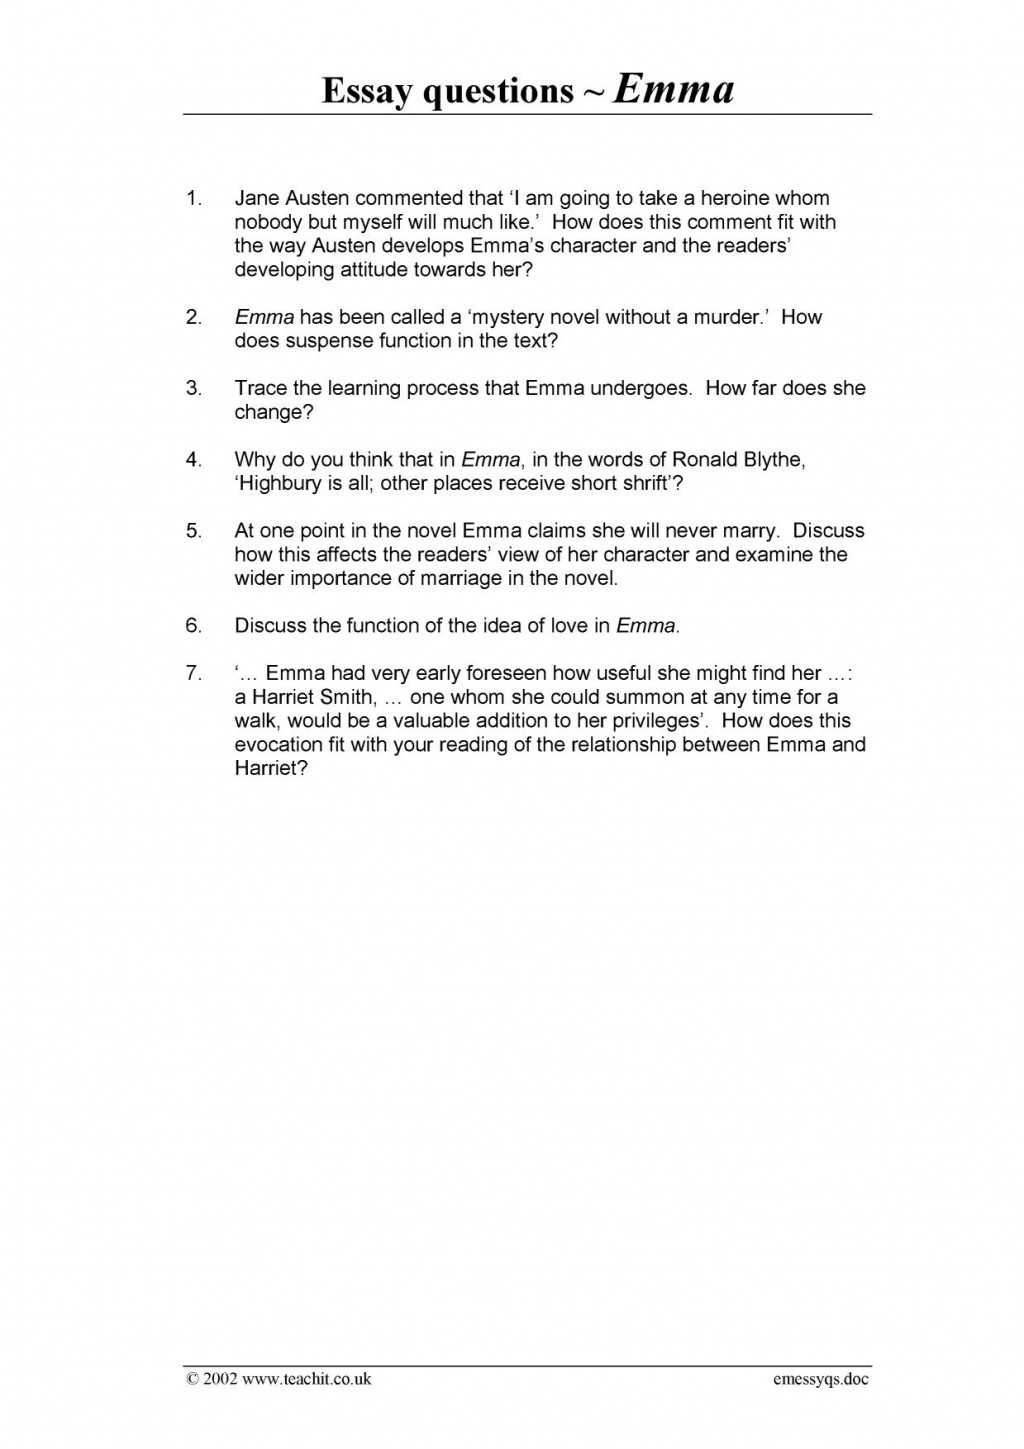 008 Concert Report Essay Example Topics Easy Help Projectile Motion Lab Jazz Paper Sample Excellent Music Appreciation Review Classical Large